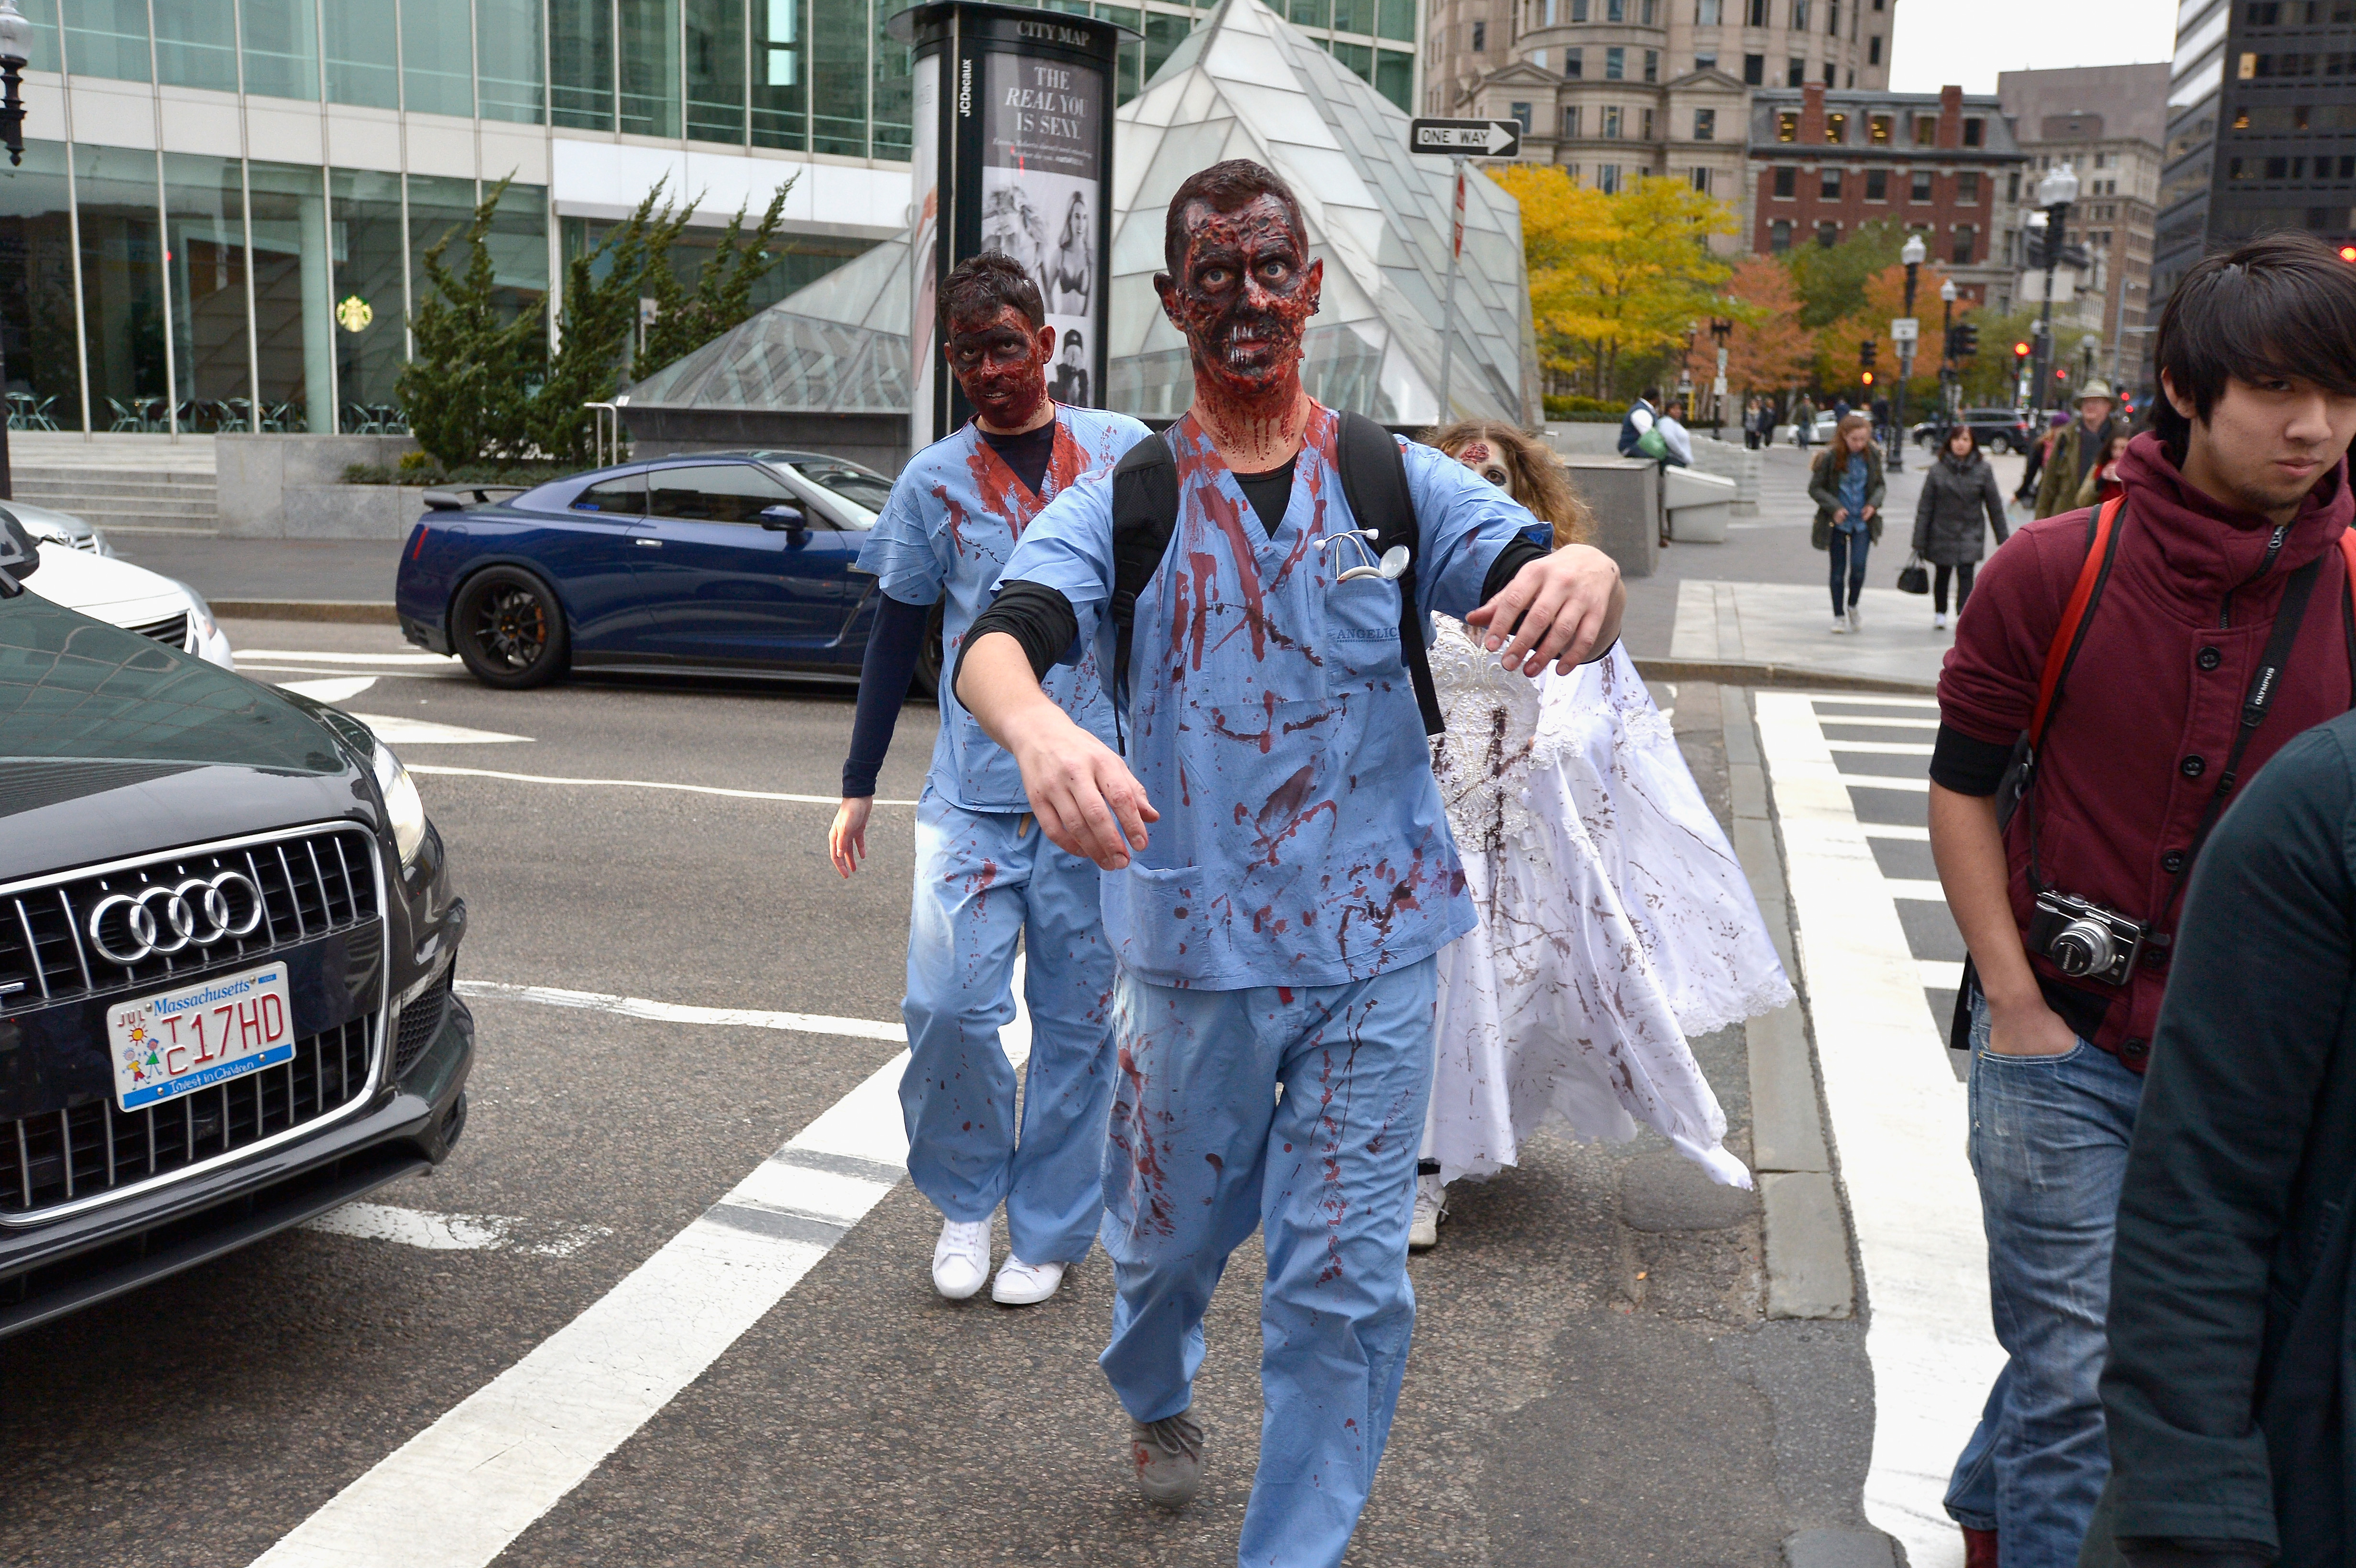 The undead hit the streets in Boston's Zombie March on Oct. 24, 2015.